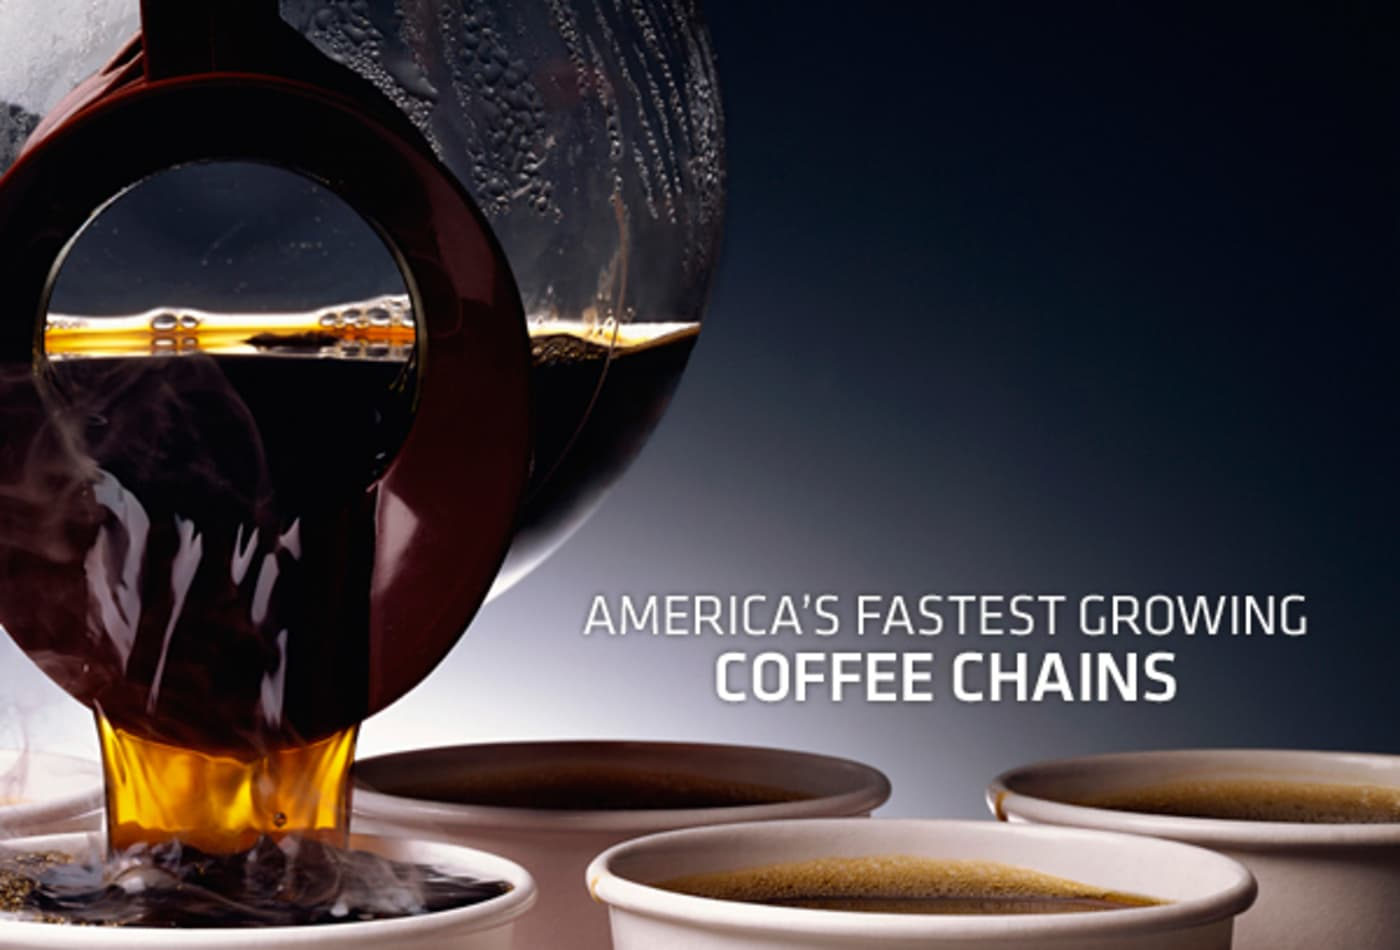 coffee_fastest_growing_cover.jpg